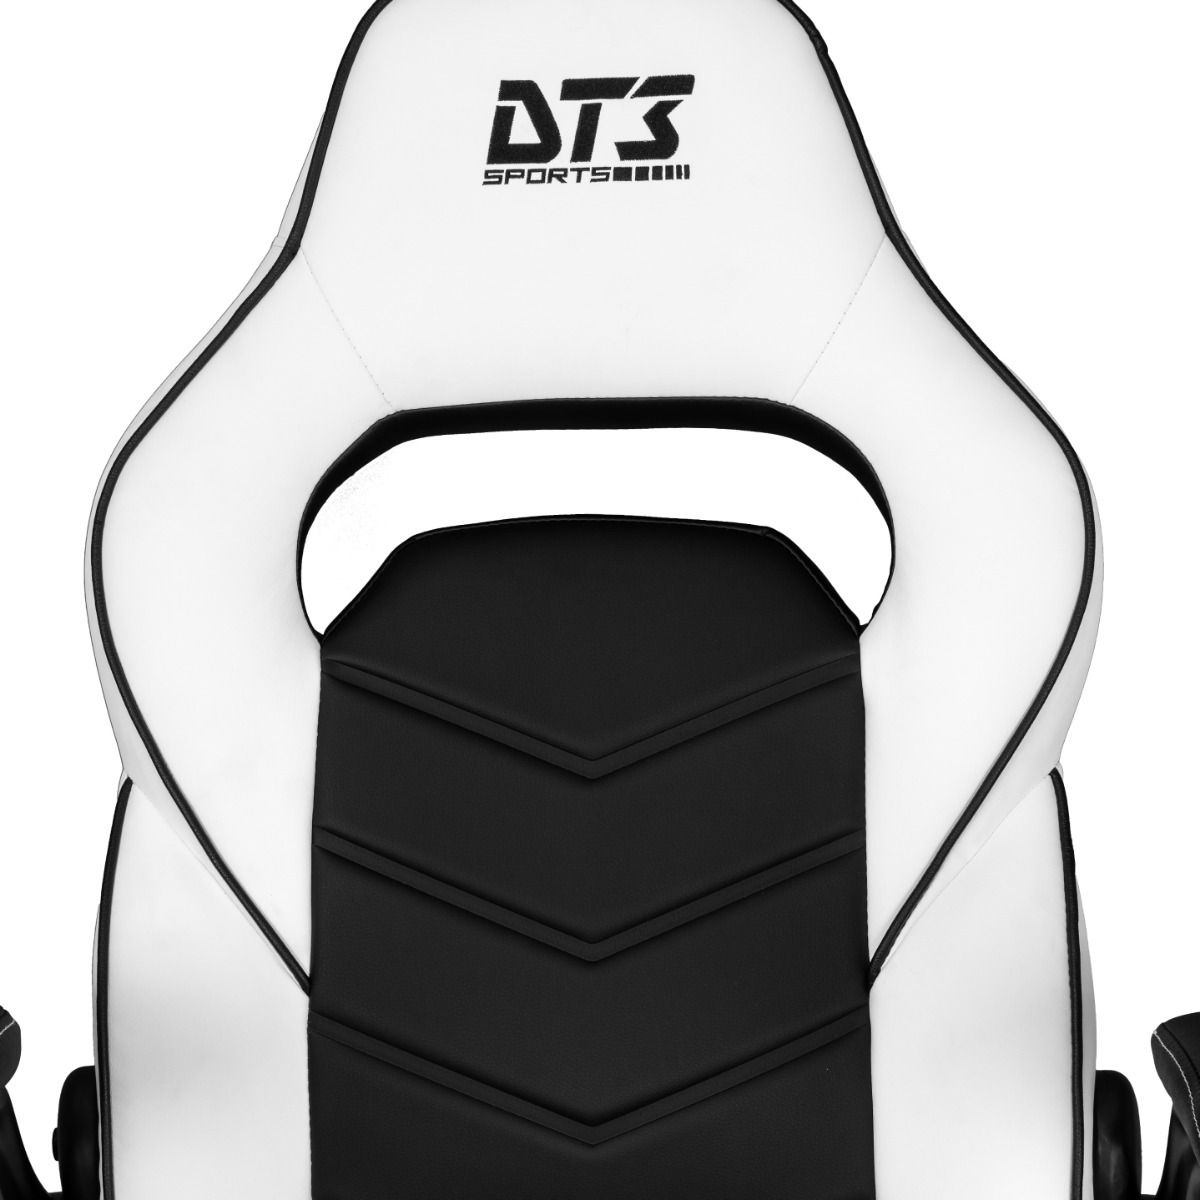 Cadeira Gamer GTR Gaming Series DT3